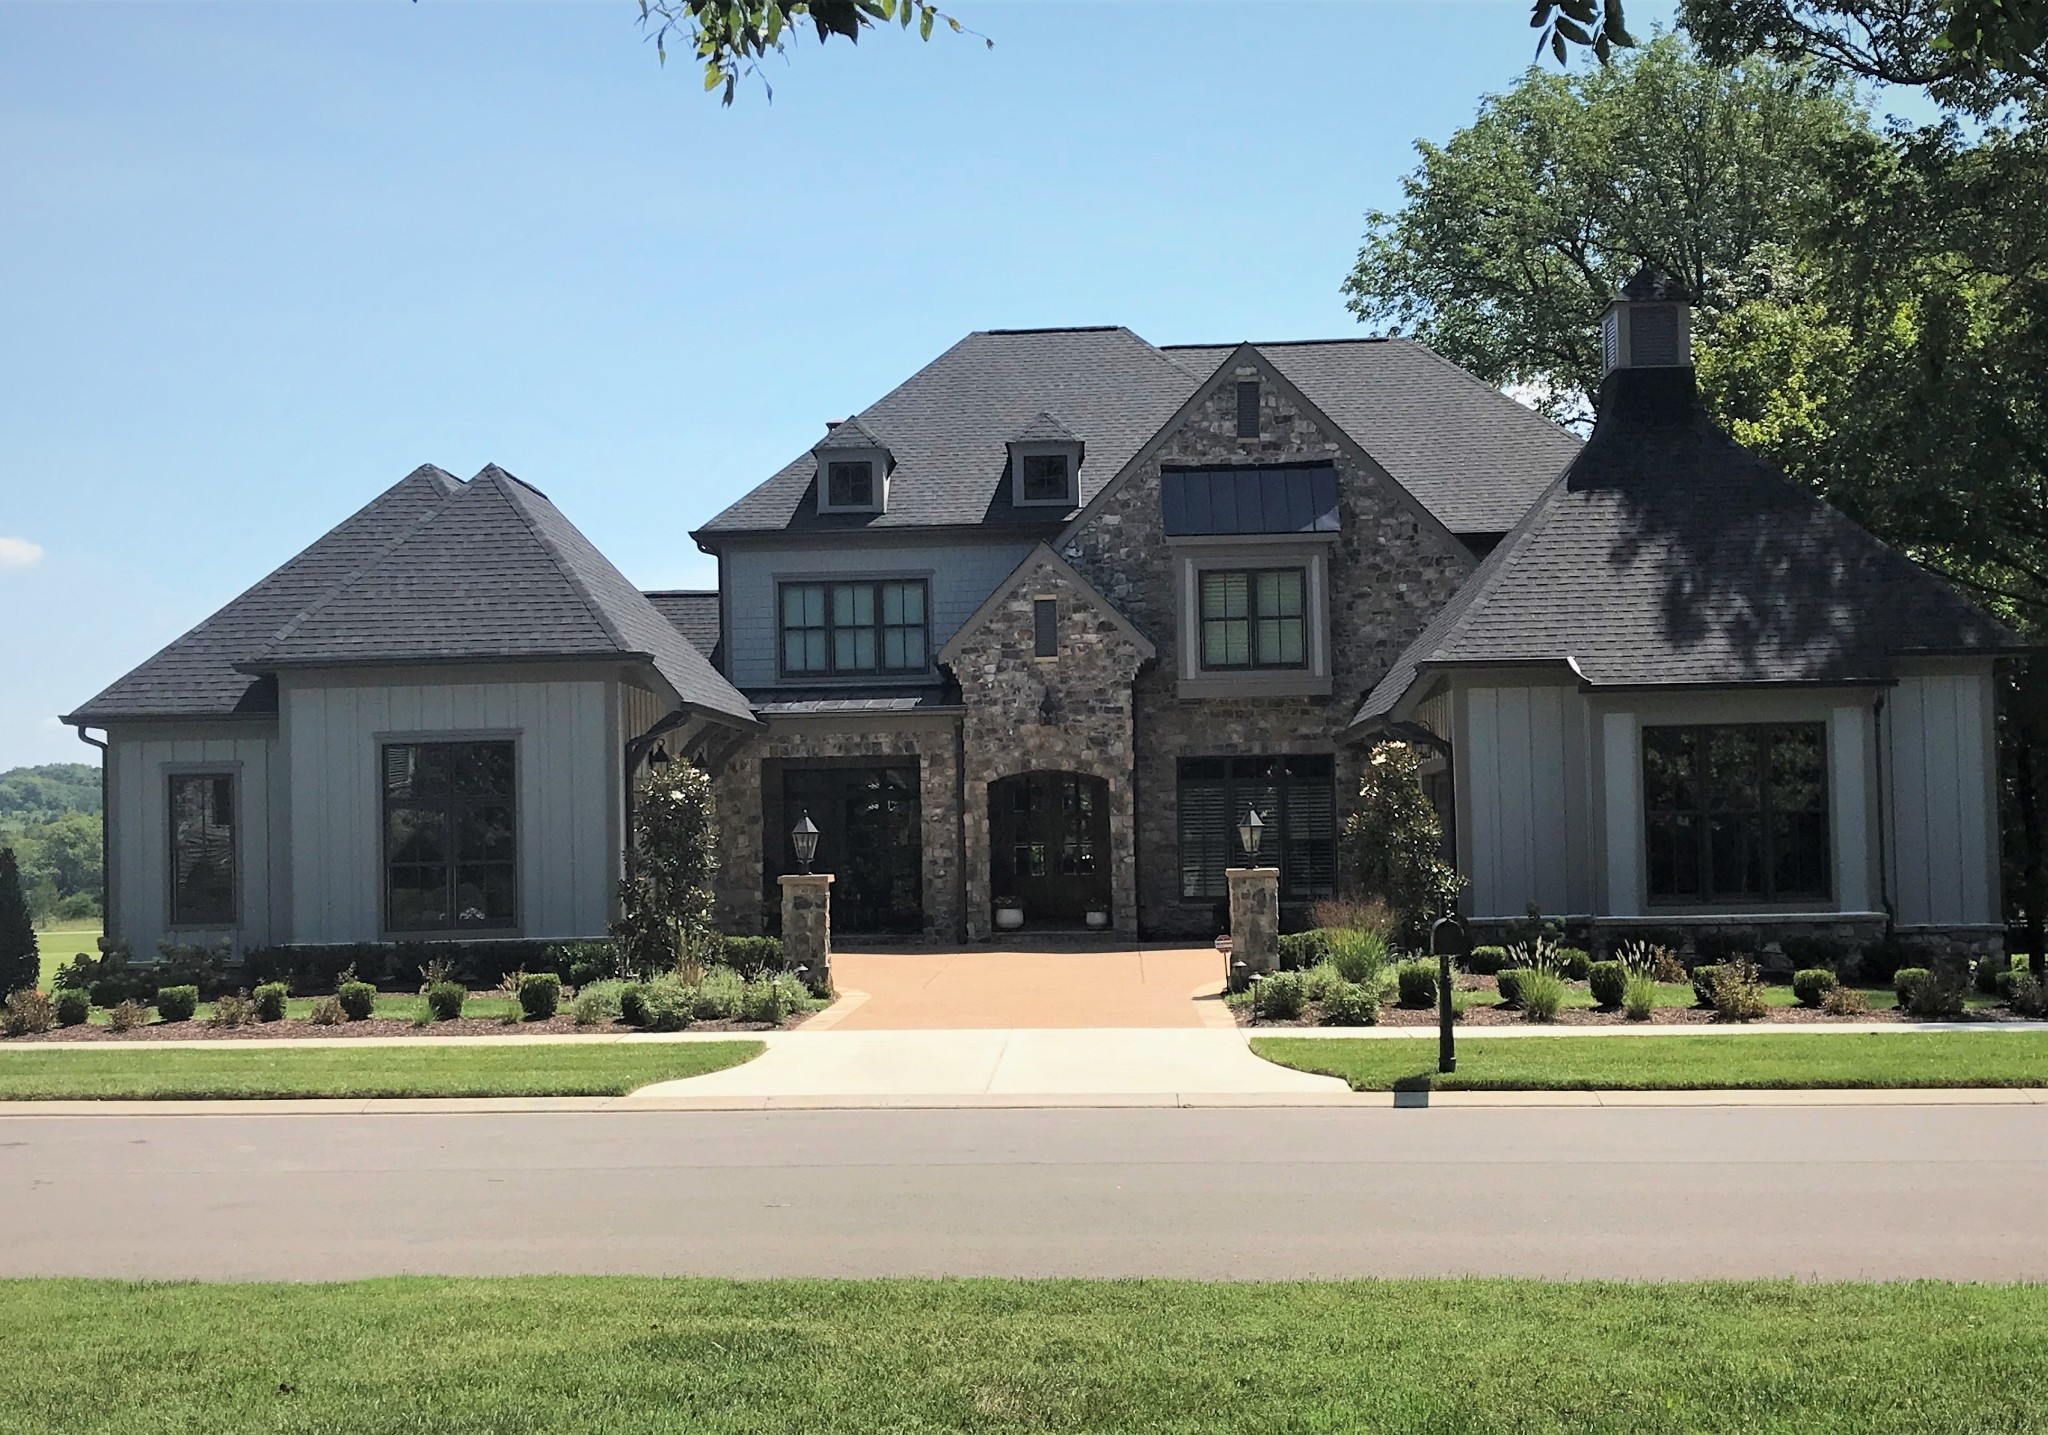 6018 Pelican Way (Lot 2073) Property Photo - College Grove, TN real estate listing